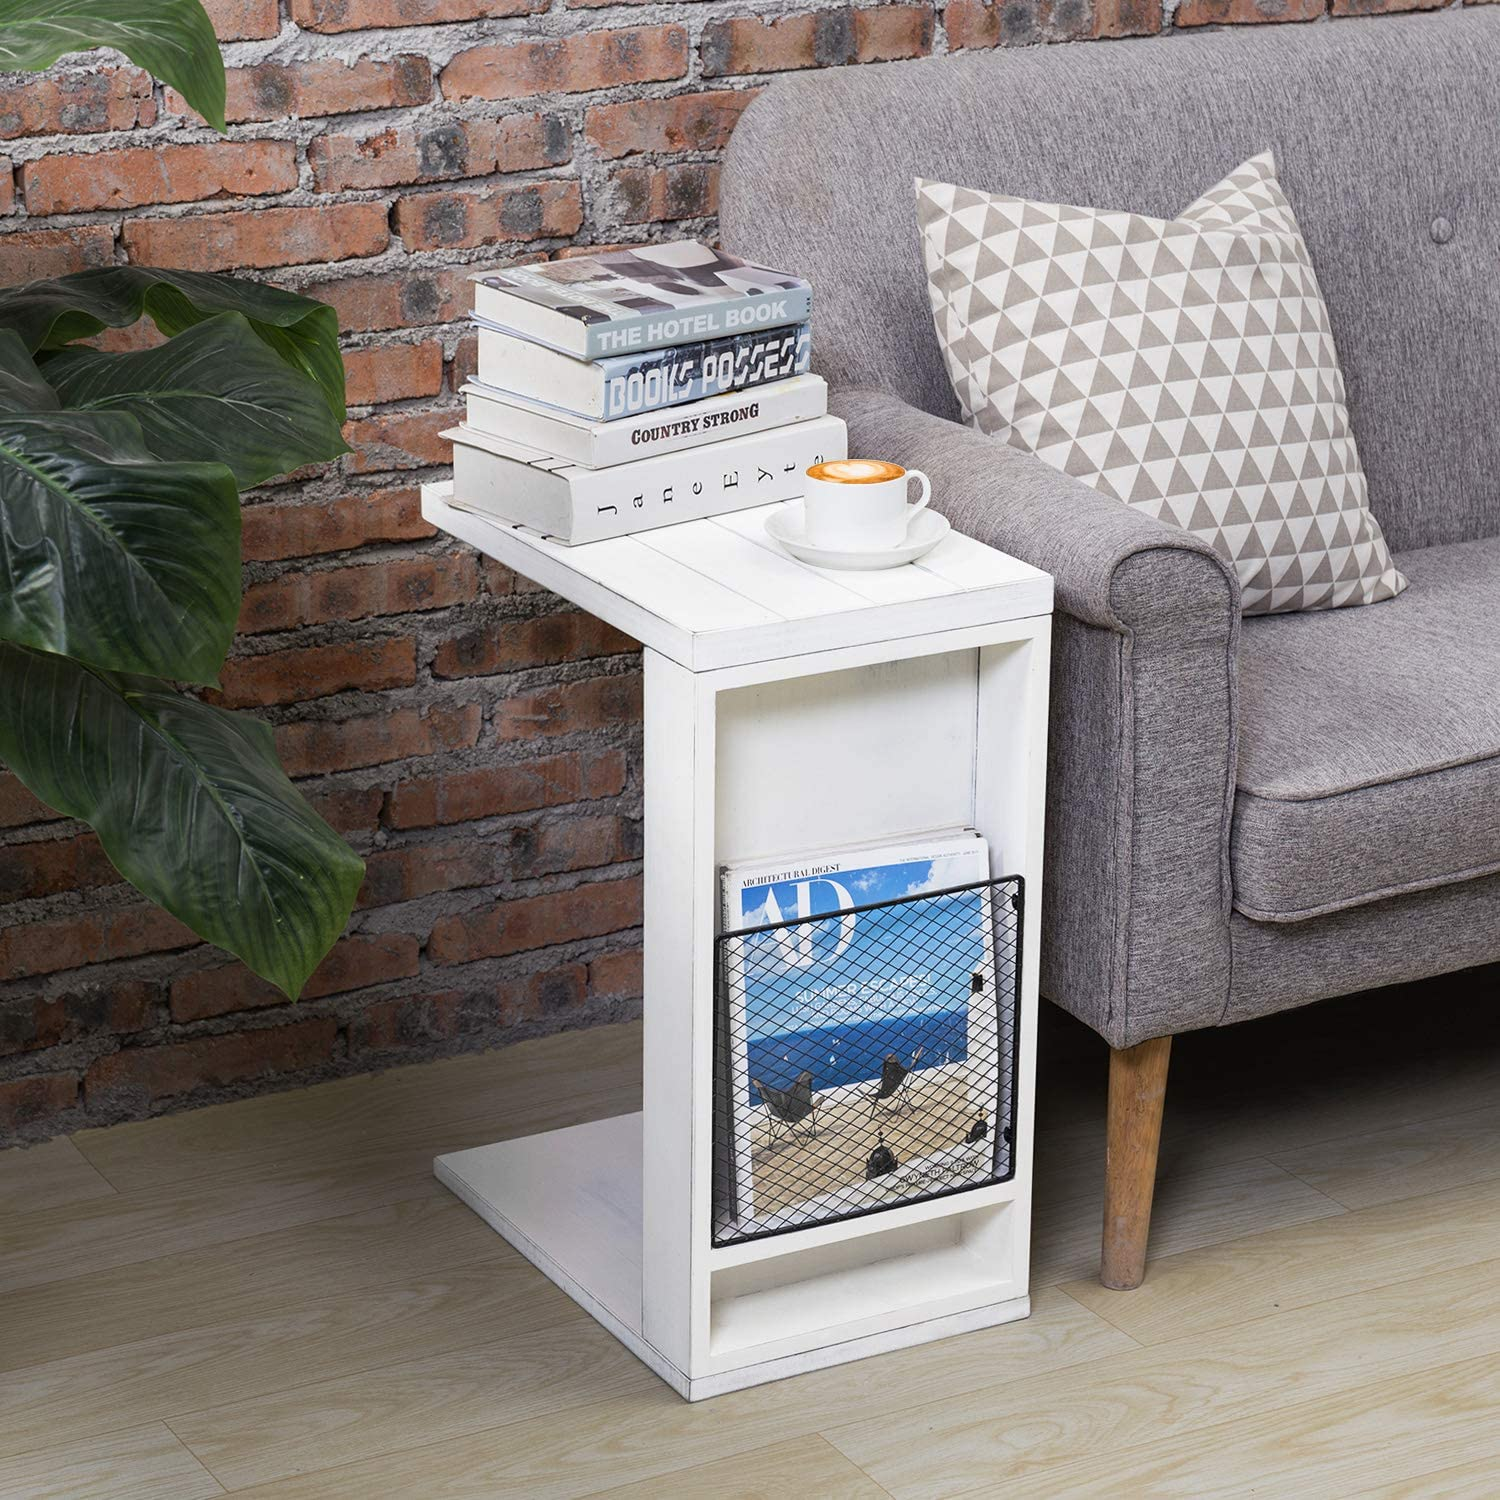 MyGift Vintage White Slatted Boards Style C-Table/Side Sofa Table with Rustic Metal Wire Magazine Holder Slot: Furniture & Decor